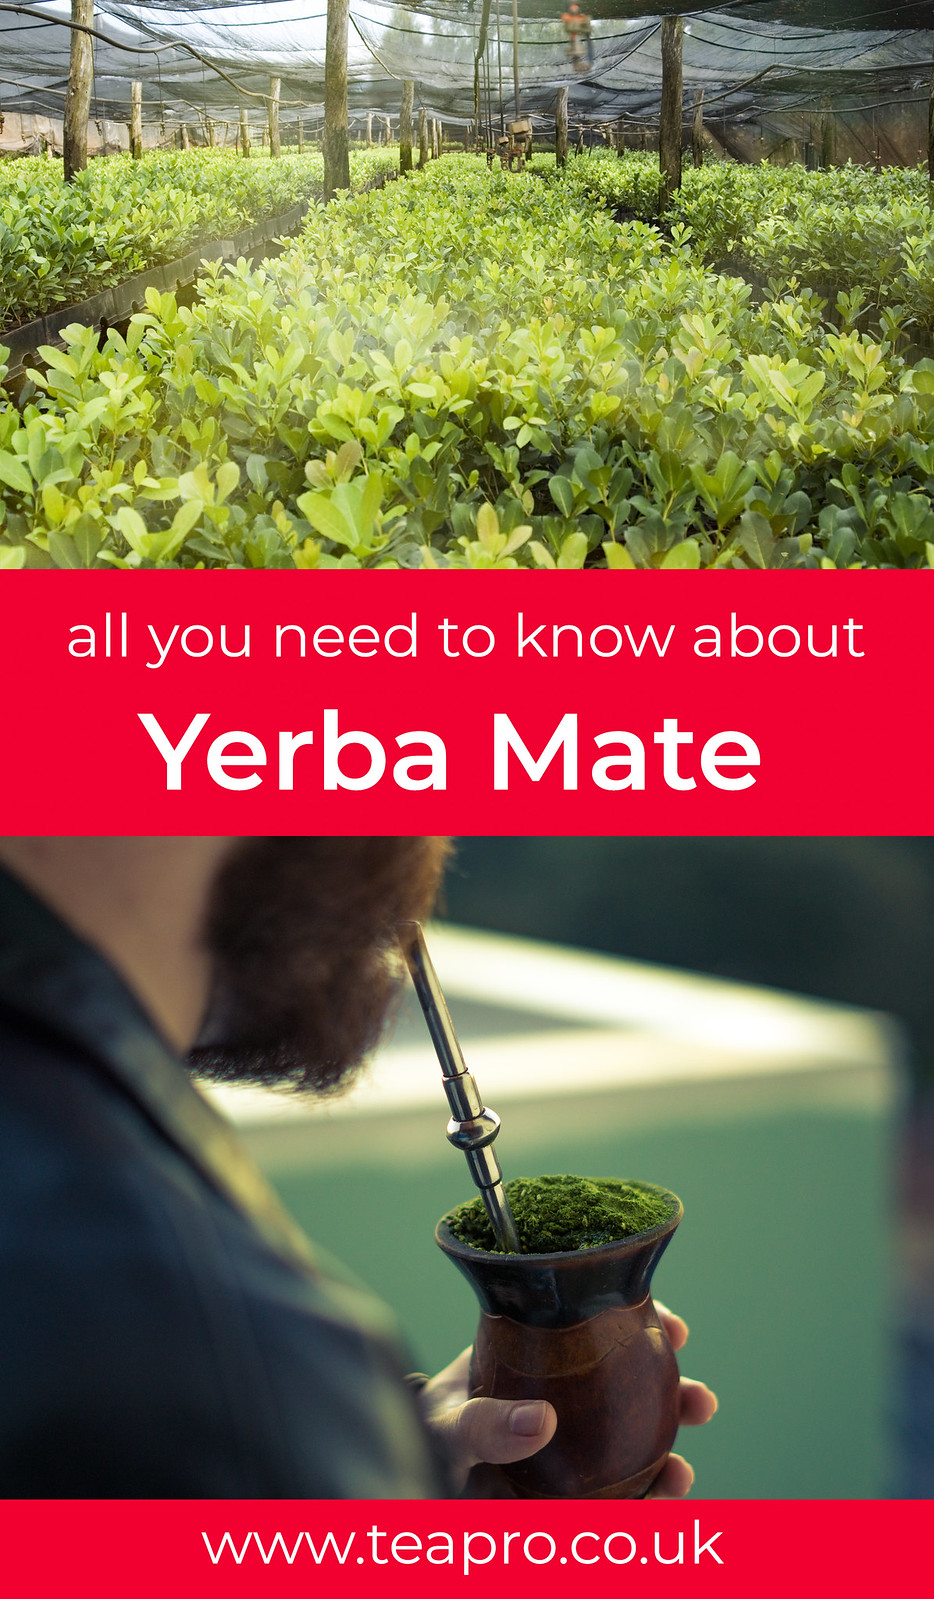 teapro-all-you-need-to-know-about-yerba-mate